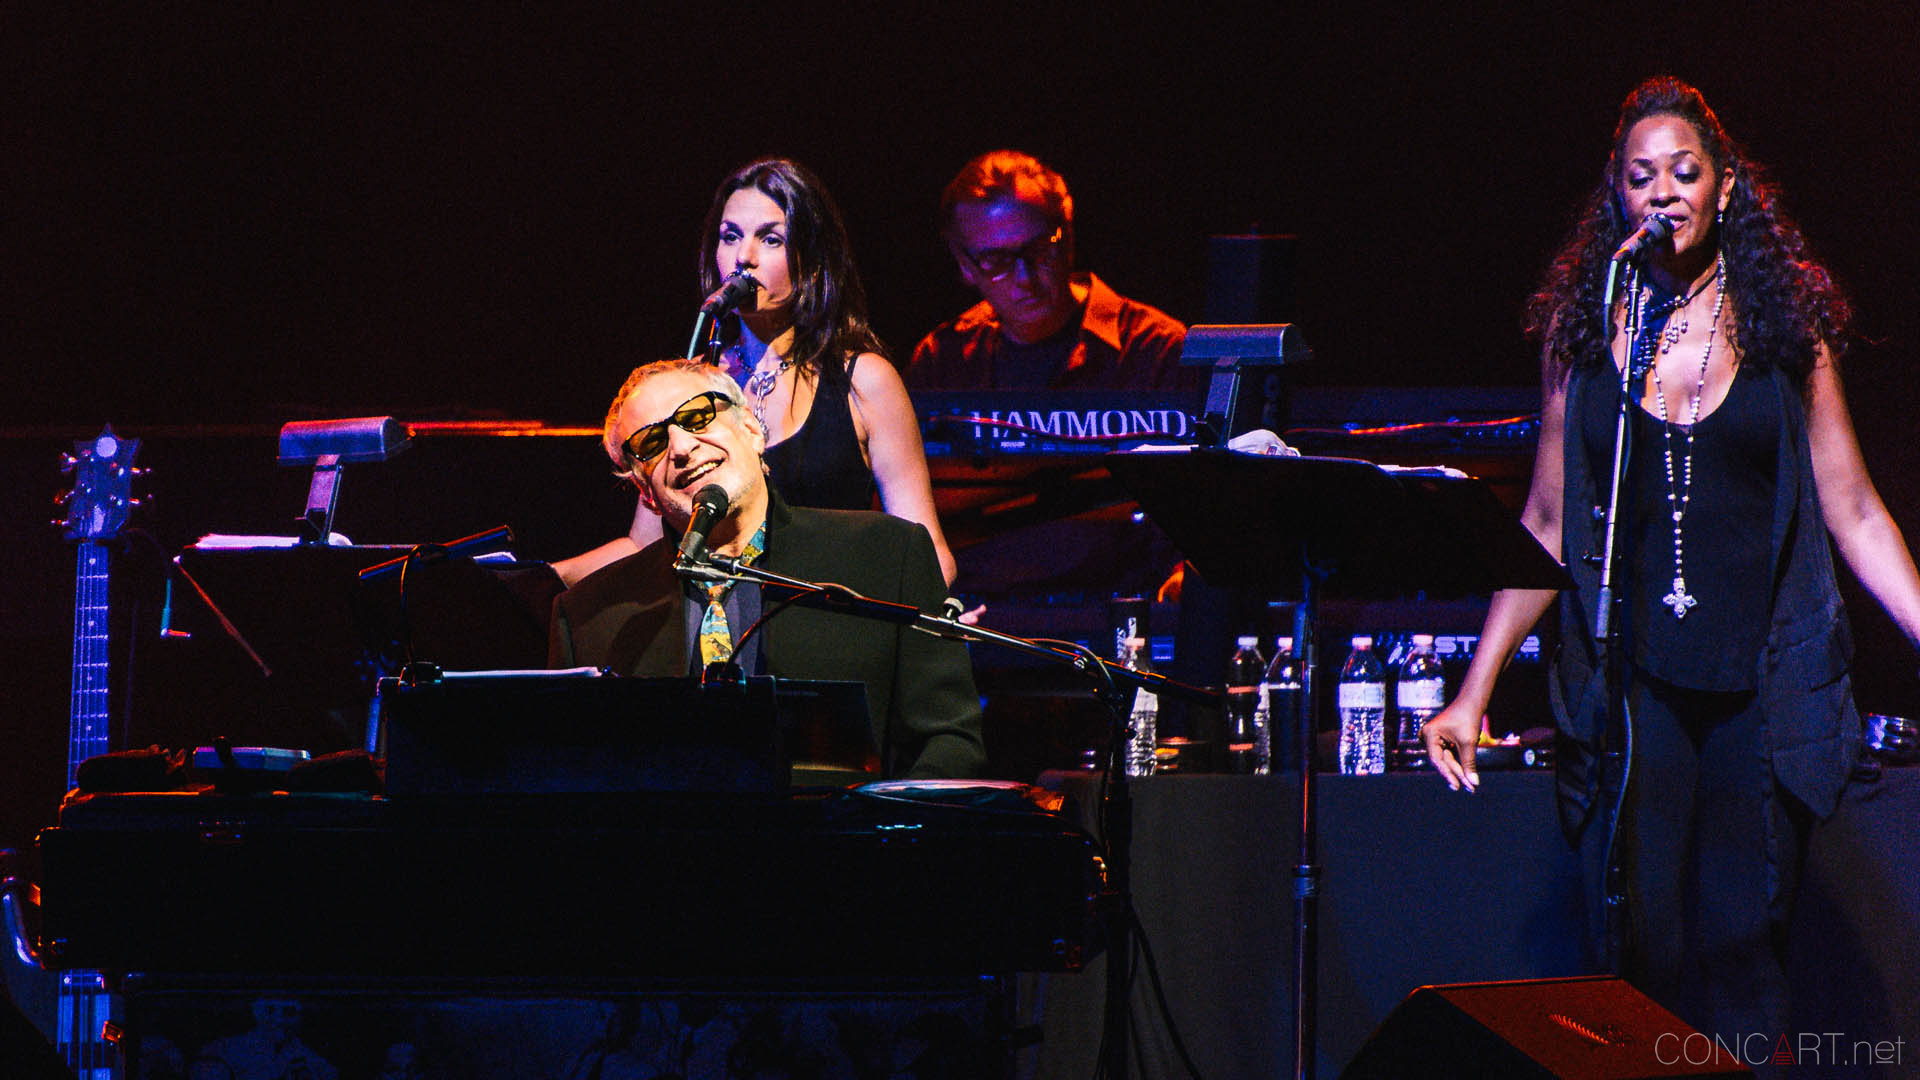 steely_dan_live_old_national_murat_theatre_indianapolis_2013-31